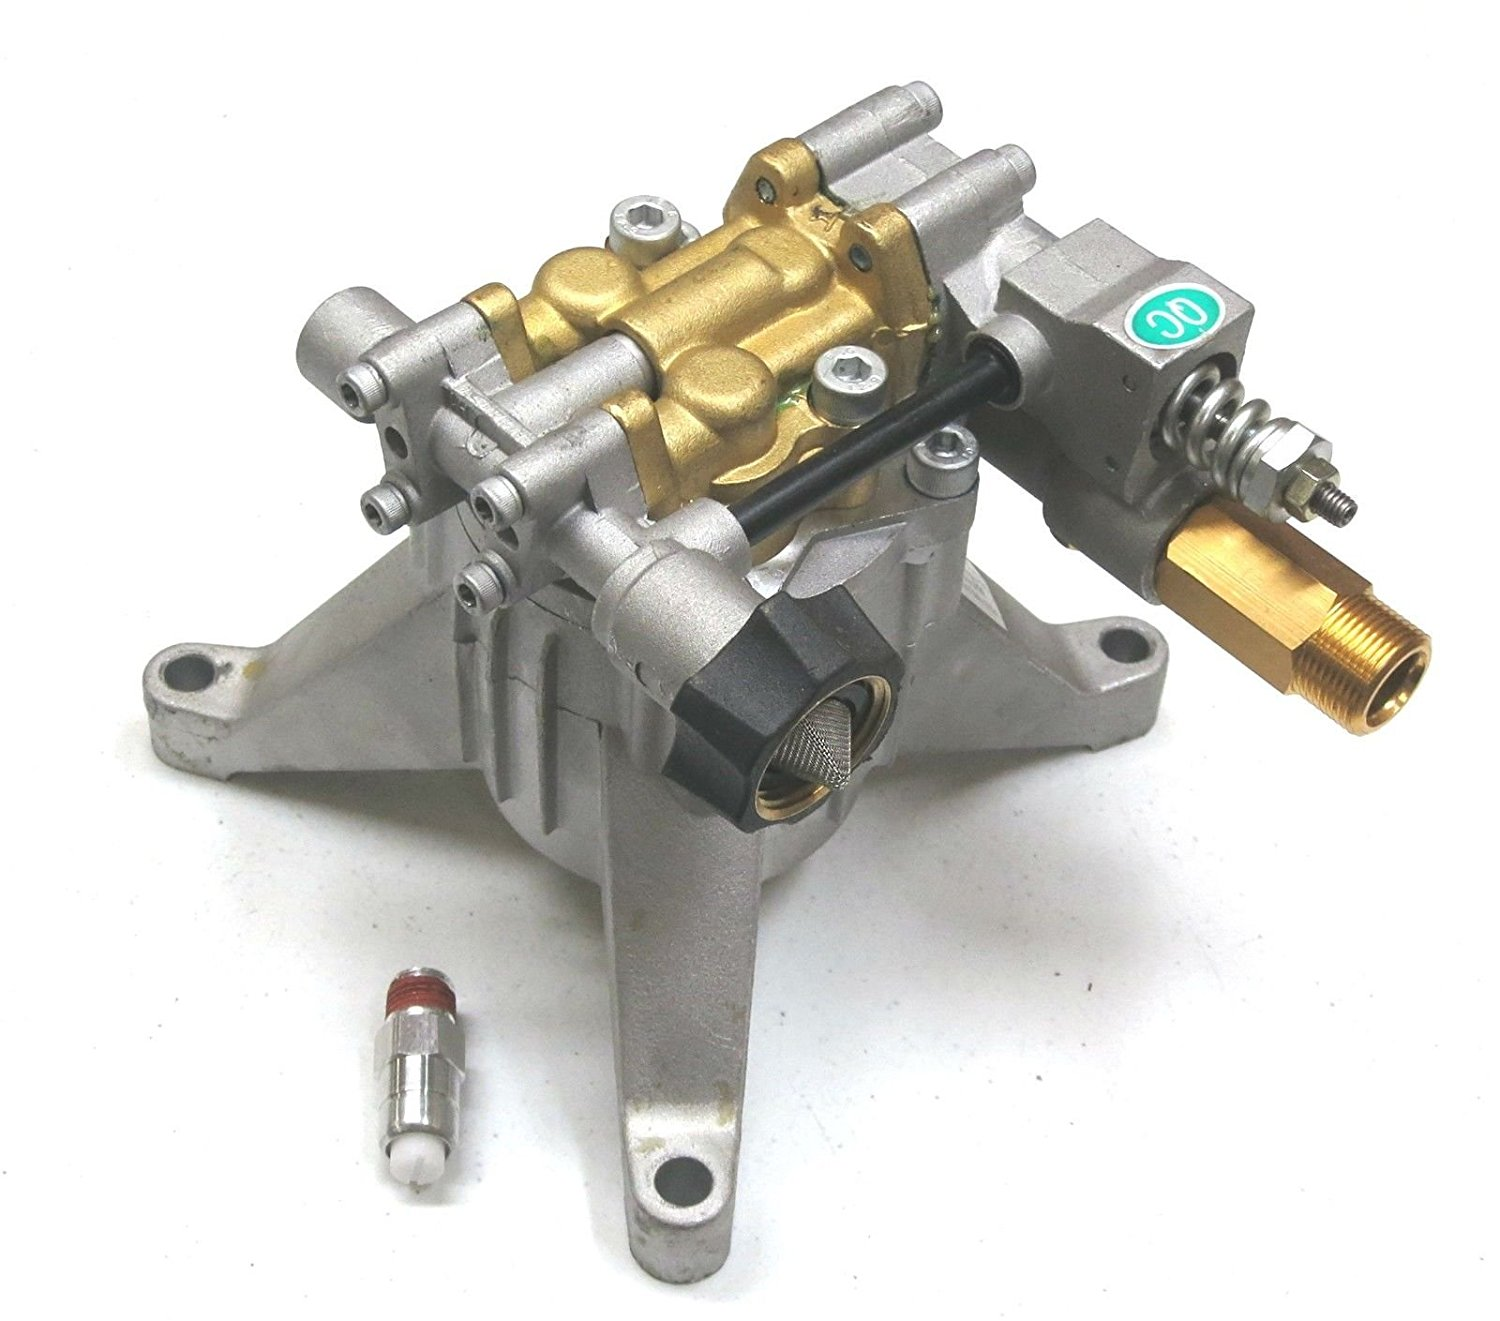 3100 PSI Upgraded POWER PRESSURE WASHER WATER PUMP Snapper 020418 supplier_id_theropshop, #UGEIO129251532729503